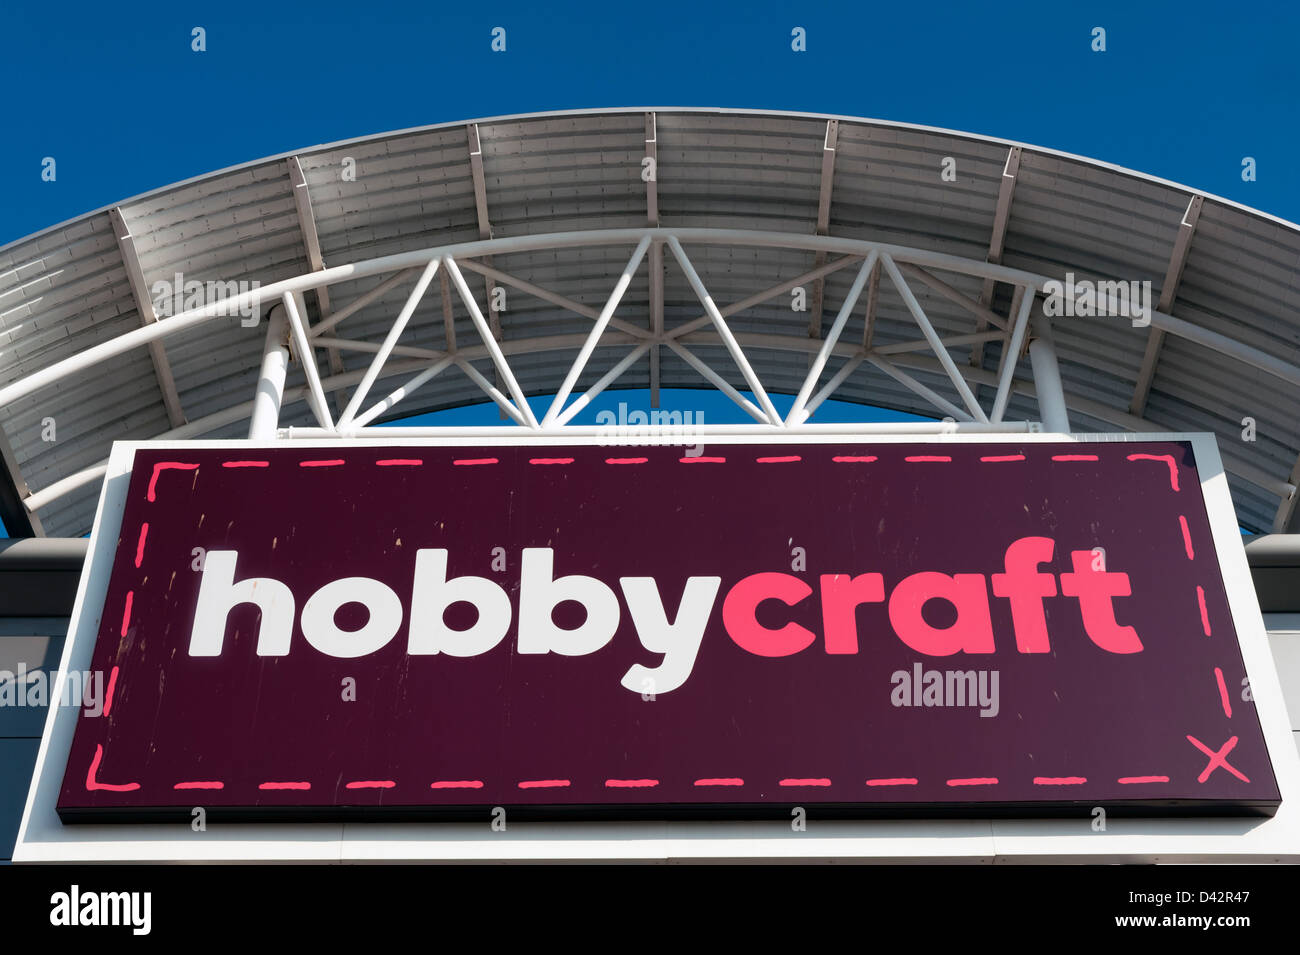 Hobby Craft shop in Hereford, UK. - Stock Image